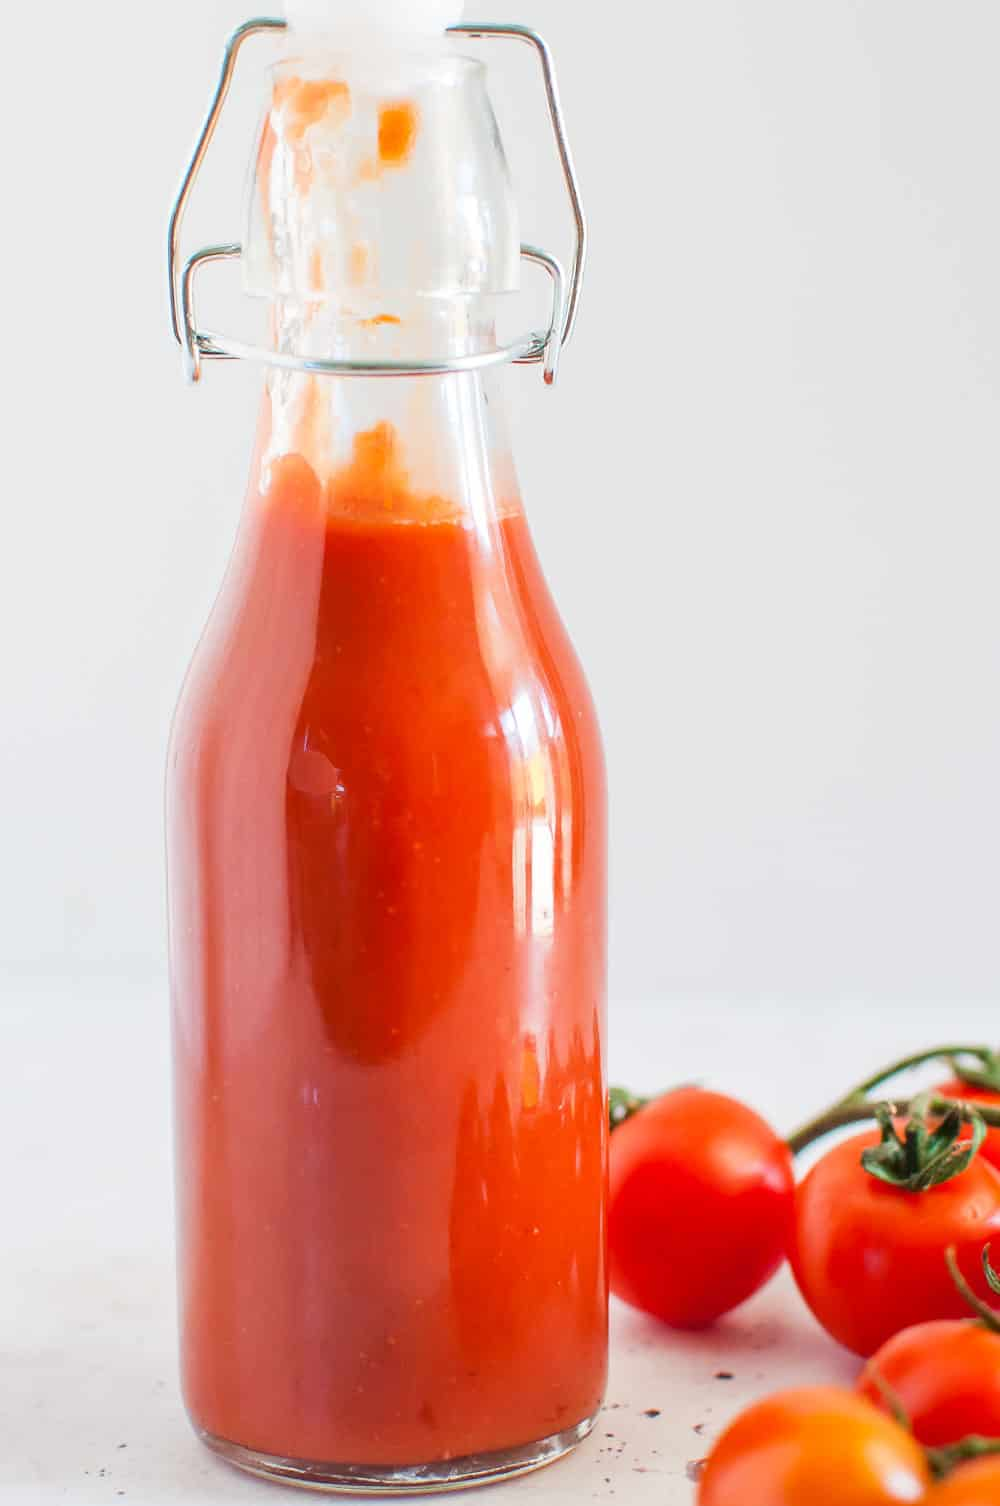 sugar free ketchup in a glass bottle